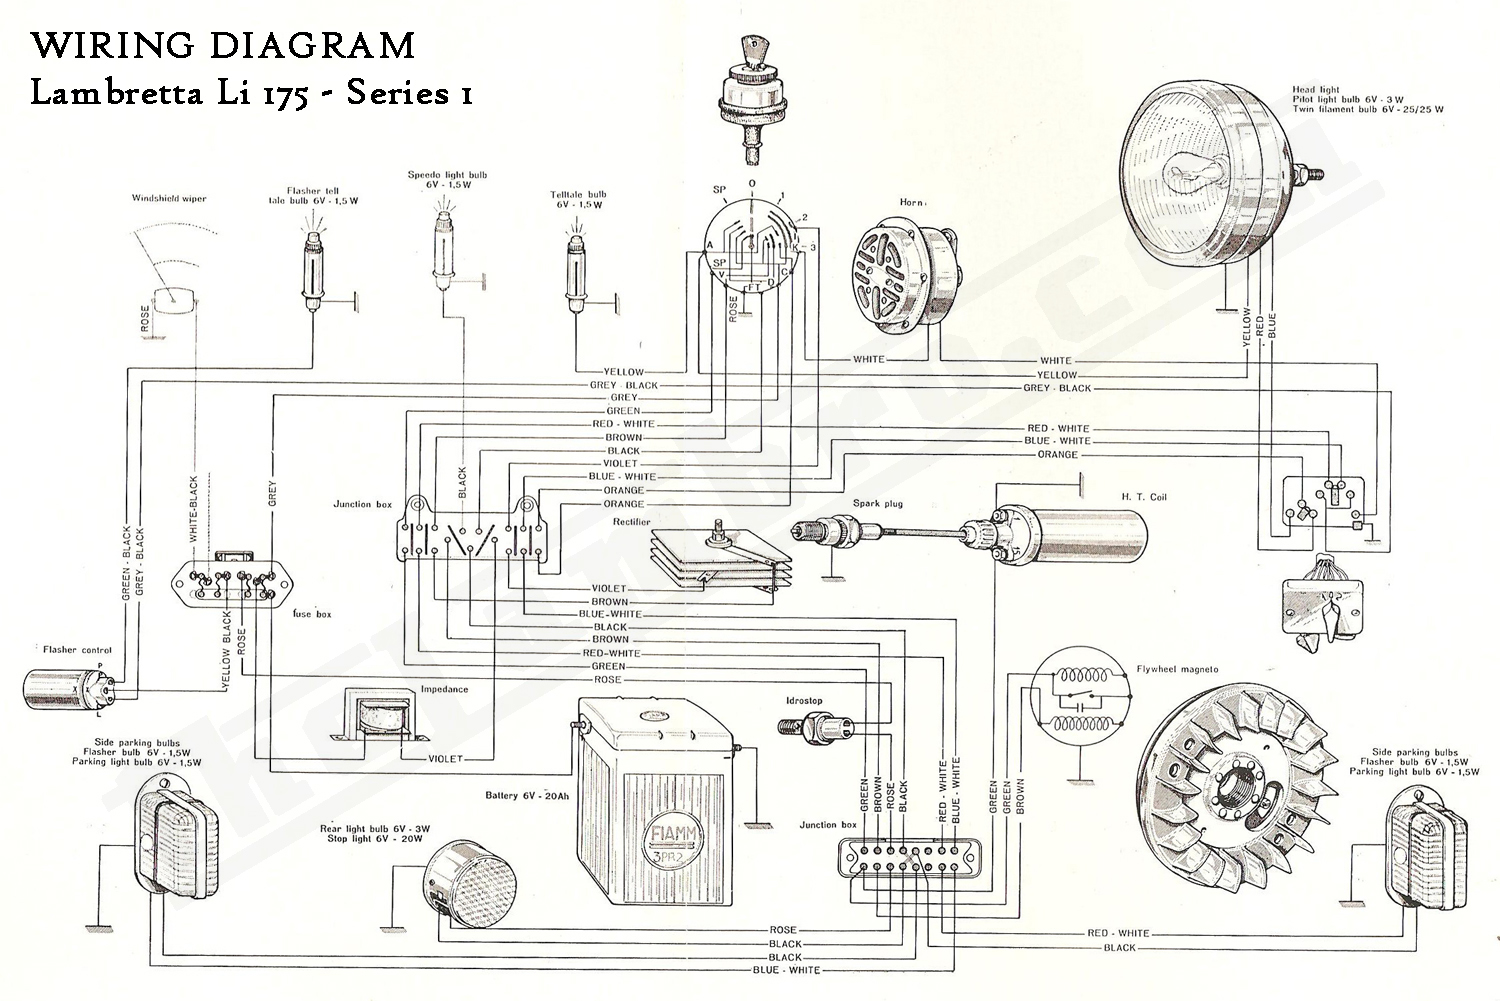 wiring diagram _series1_175 thelambro com electrics lambretta series 2 wiring diagram at crackthecode.co